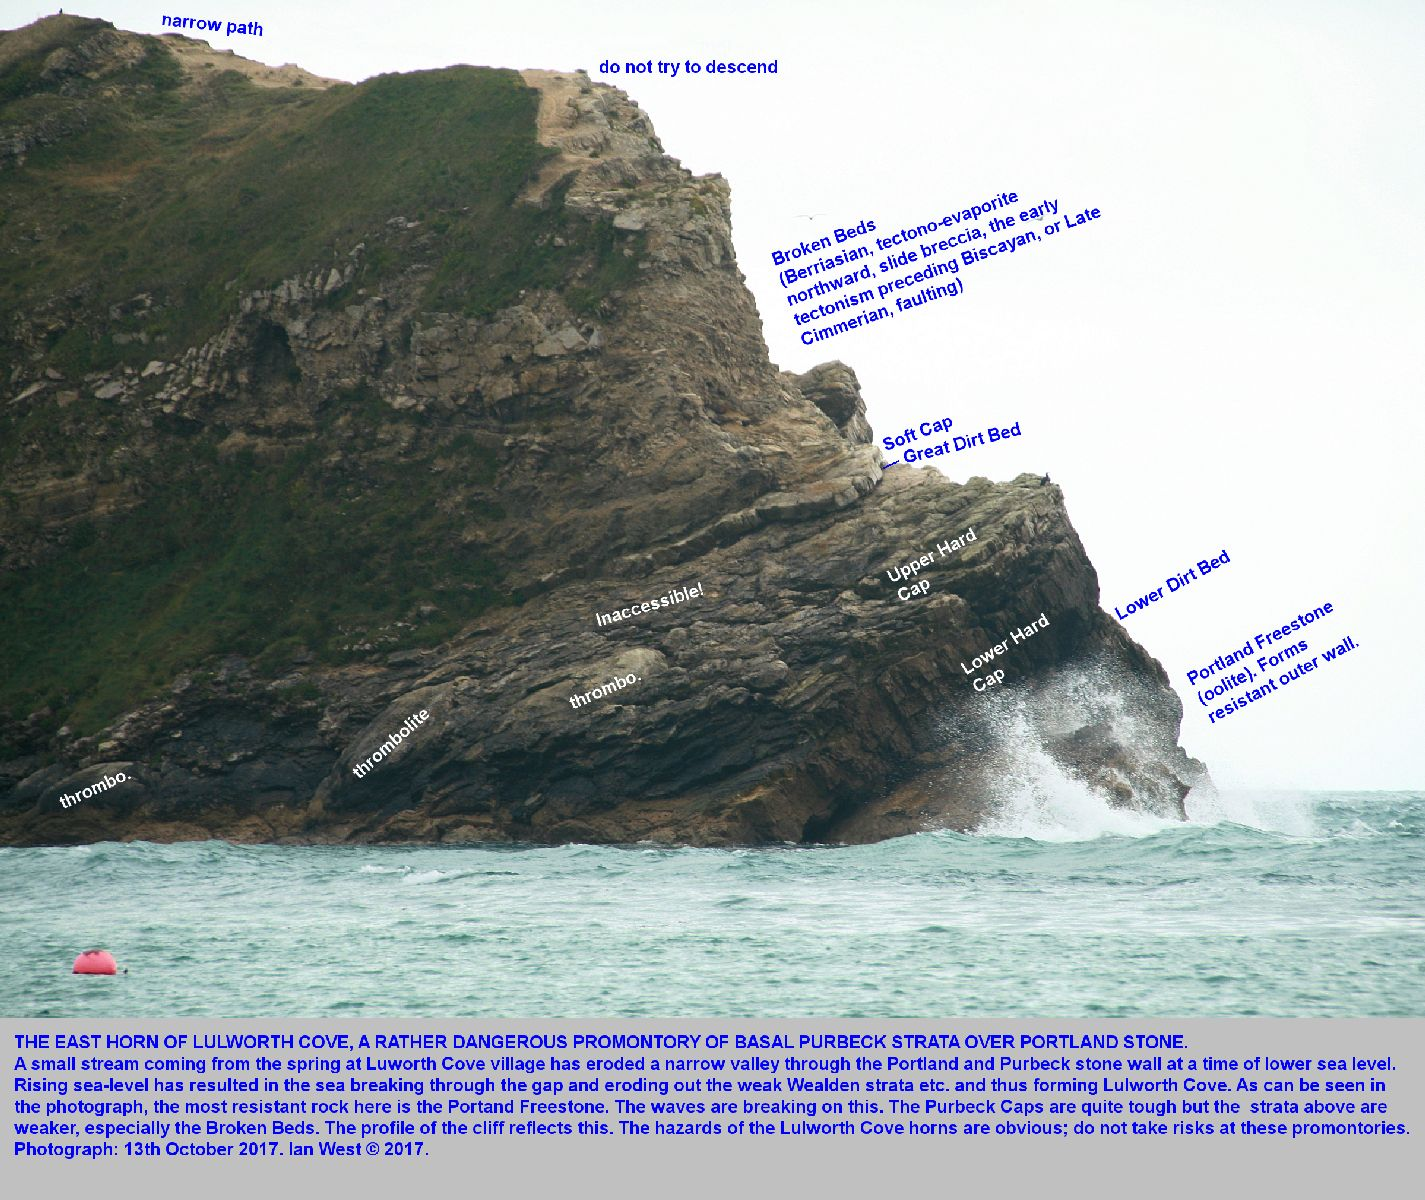 Lulworth Cove - Introduction, Geological Field Guide - By Dr  Ian West